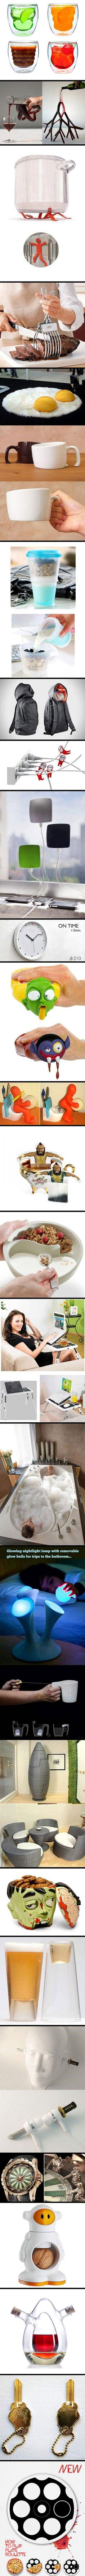 Here's another batch of cool and creative home gadgets that think outside the box. Take my money! Home Gadgets, Gadgets And Gizmos, Kitchen Gadgets, Kitchen Utensils, Kitchen Tools, Newest Gadgets, Geek Gadgets, Cooking Gadgets, Cooking Tools